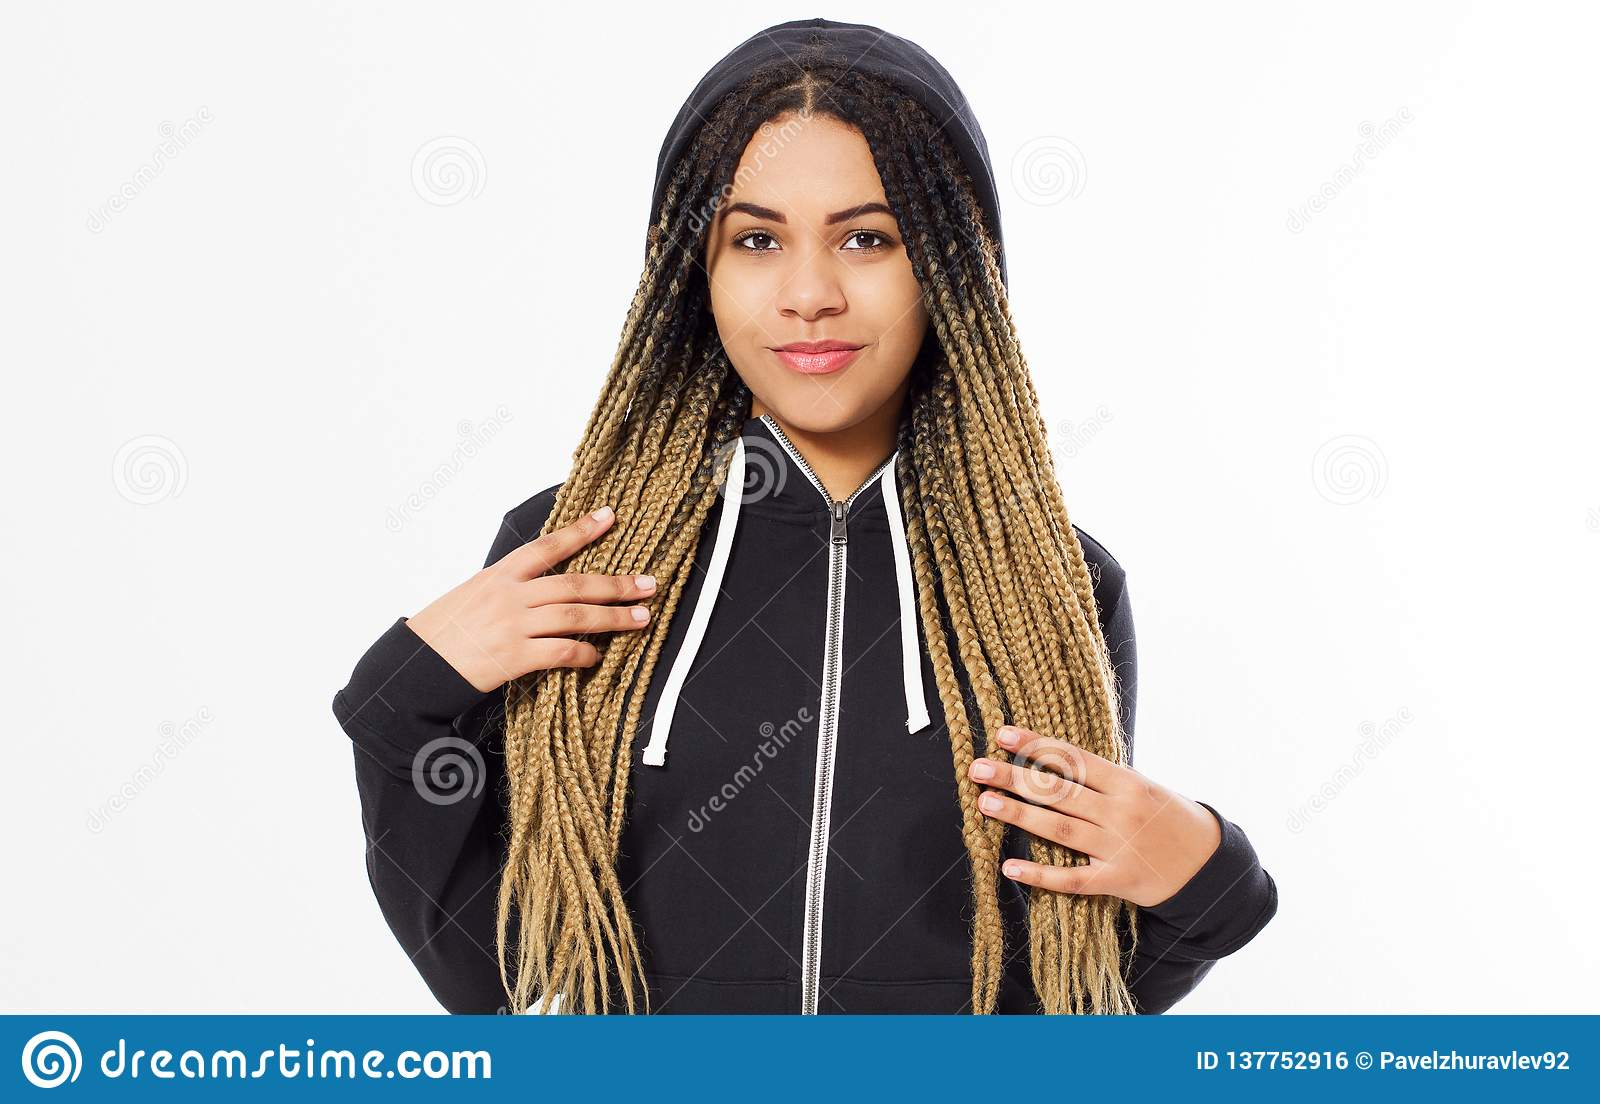 36 111 Teen Black Hair Photos Free Royalty Free Stock Photos From Dreamstime